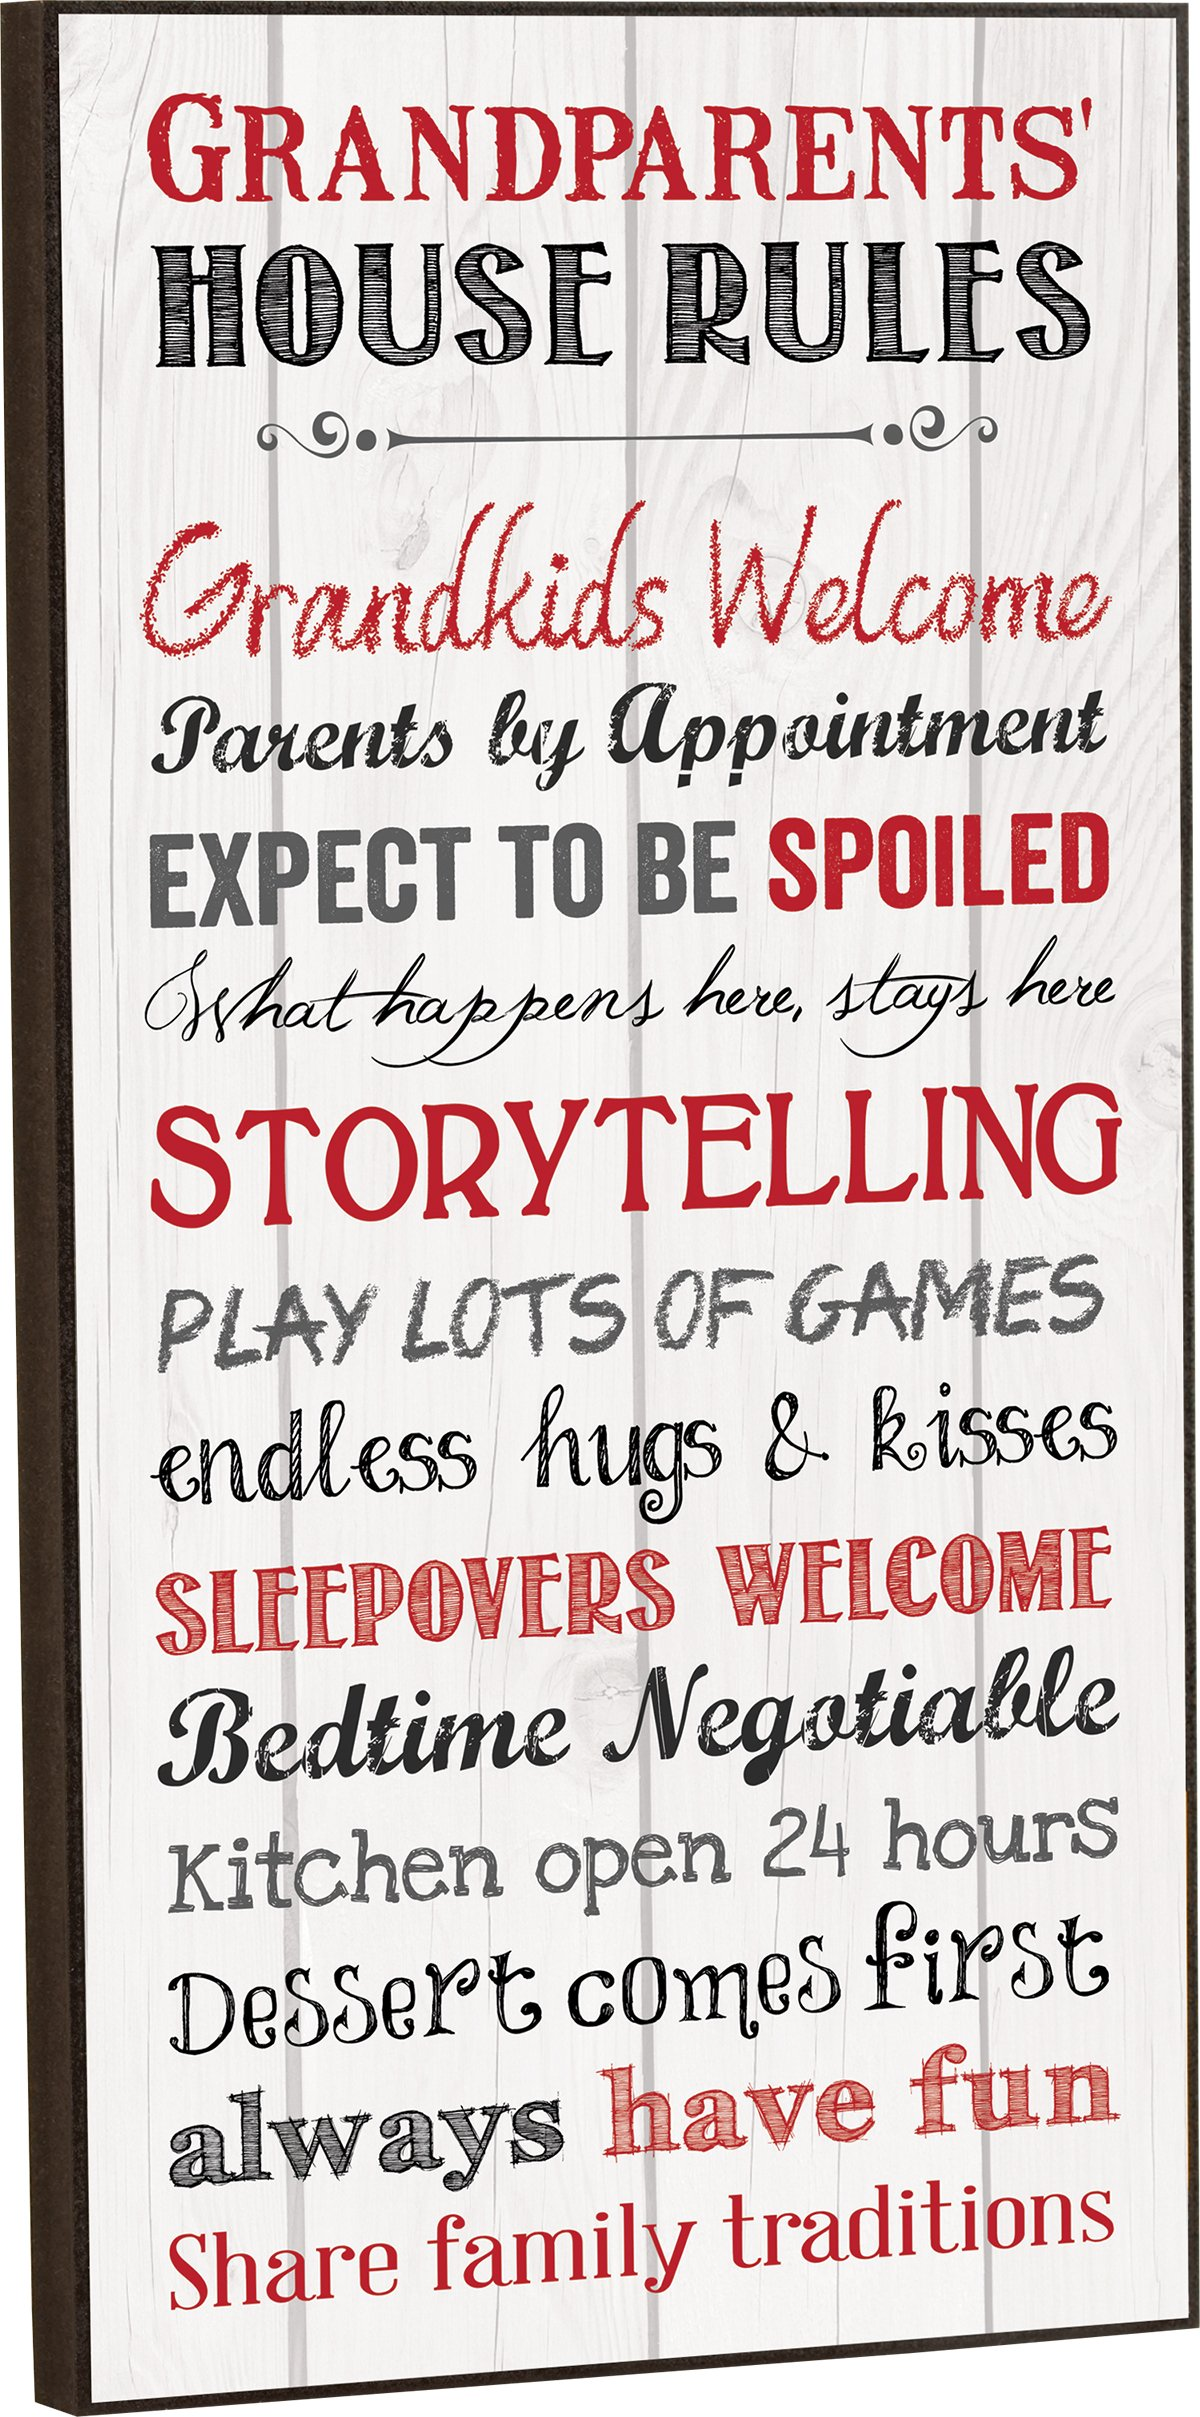 Grandparents House Rules Inspirational Wooden Decorative Wall Art Plaque